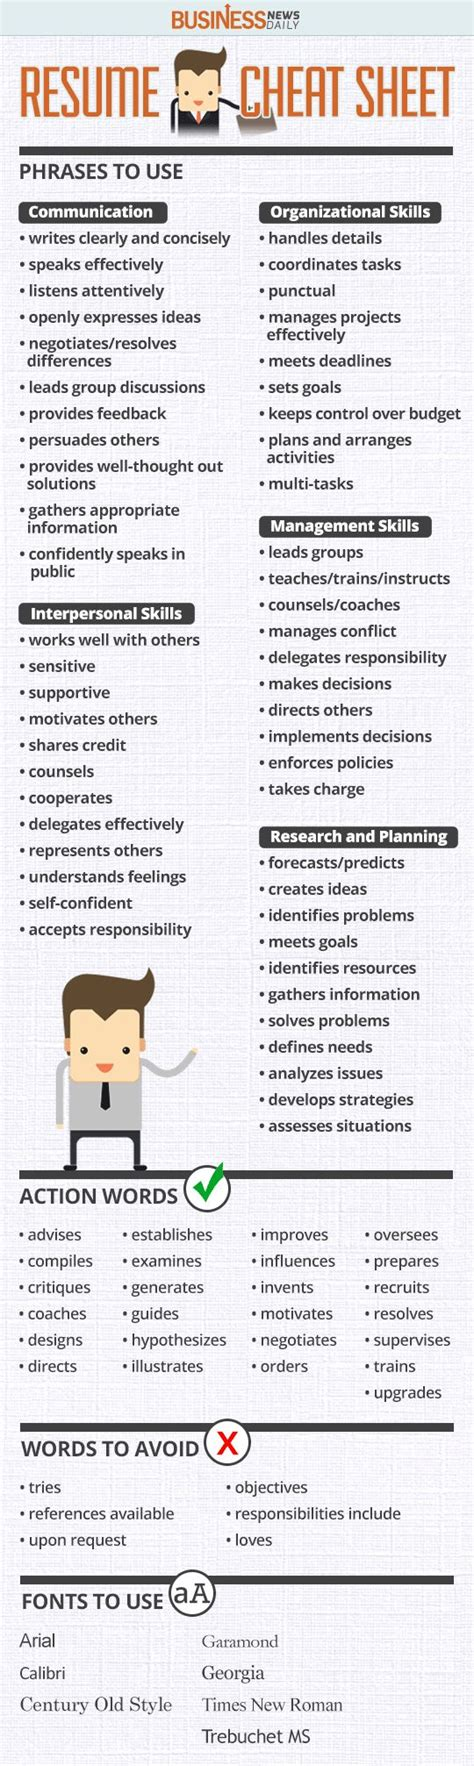 resume sheet infographic weknowmemes